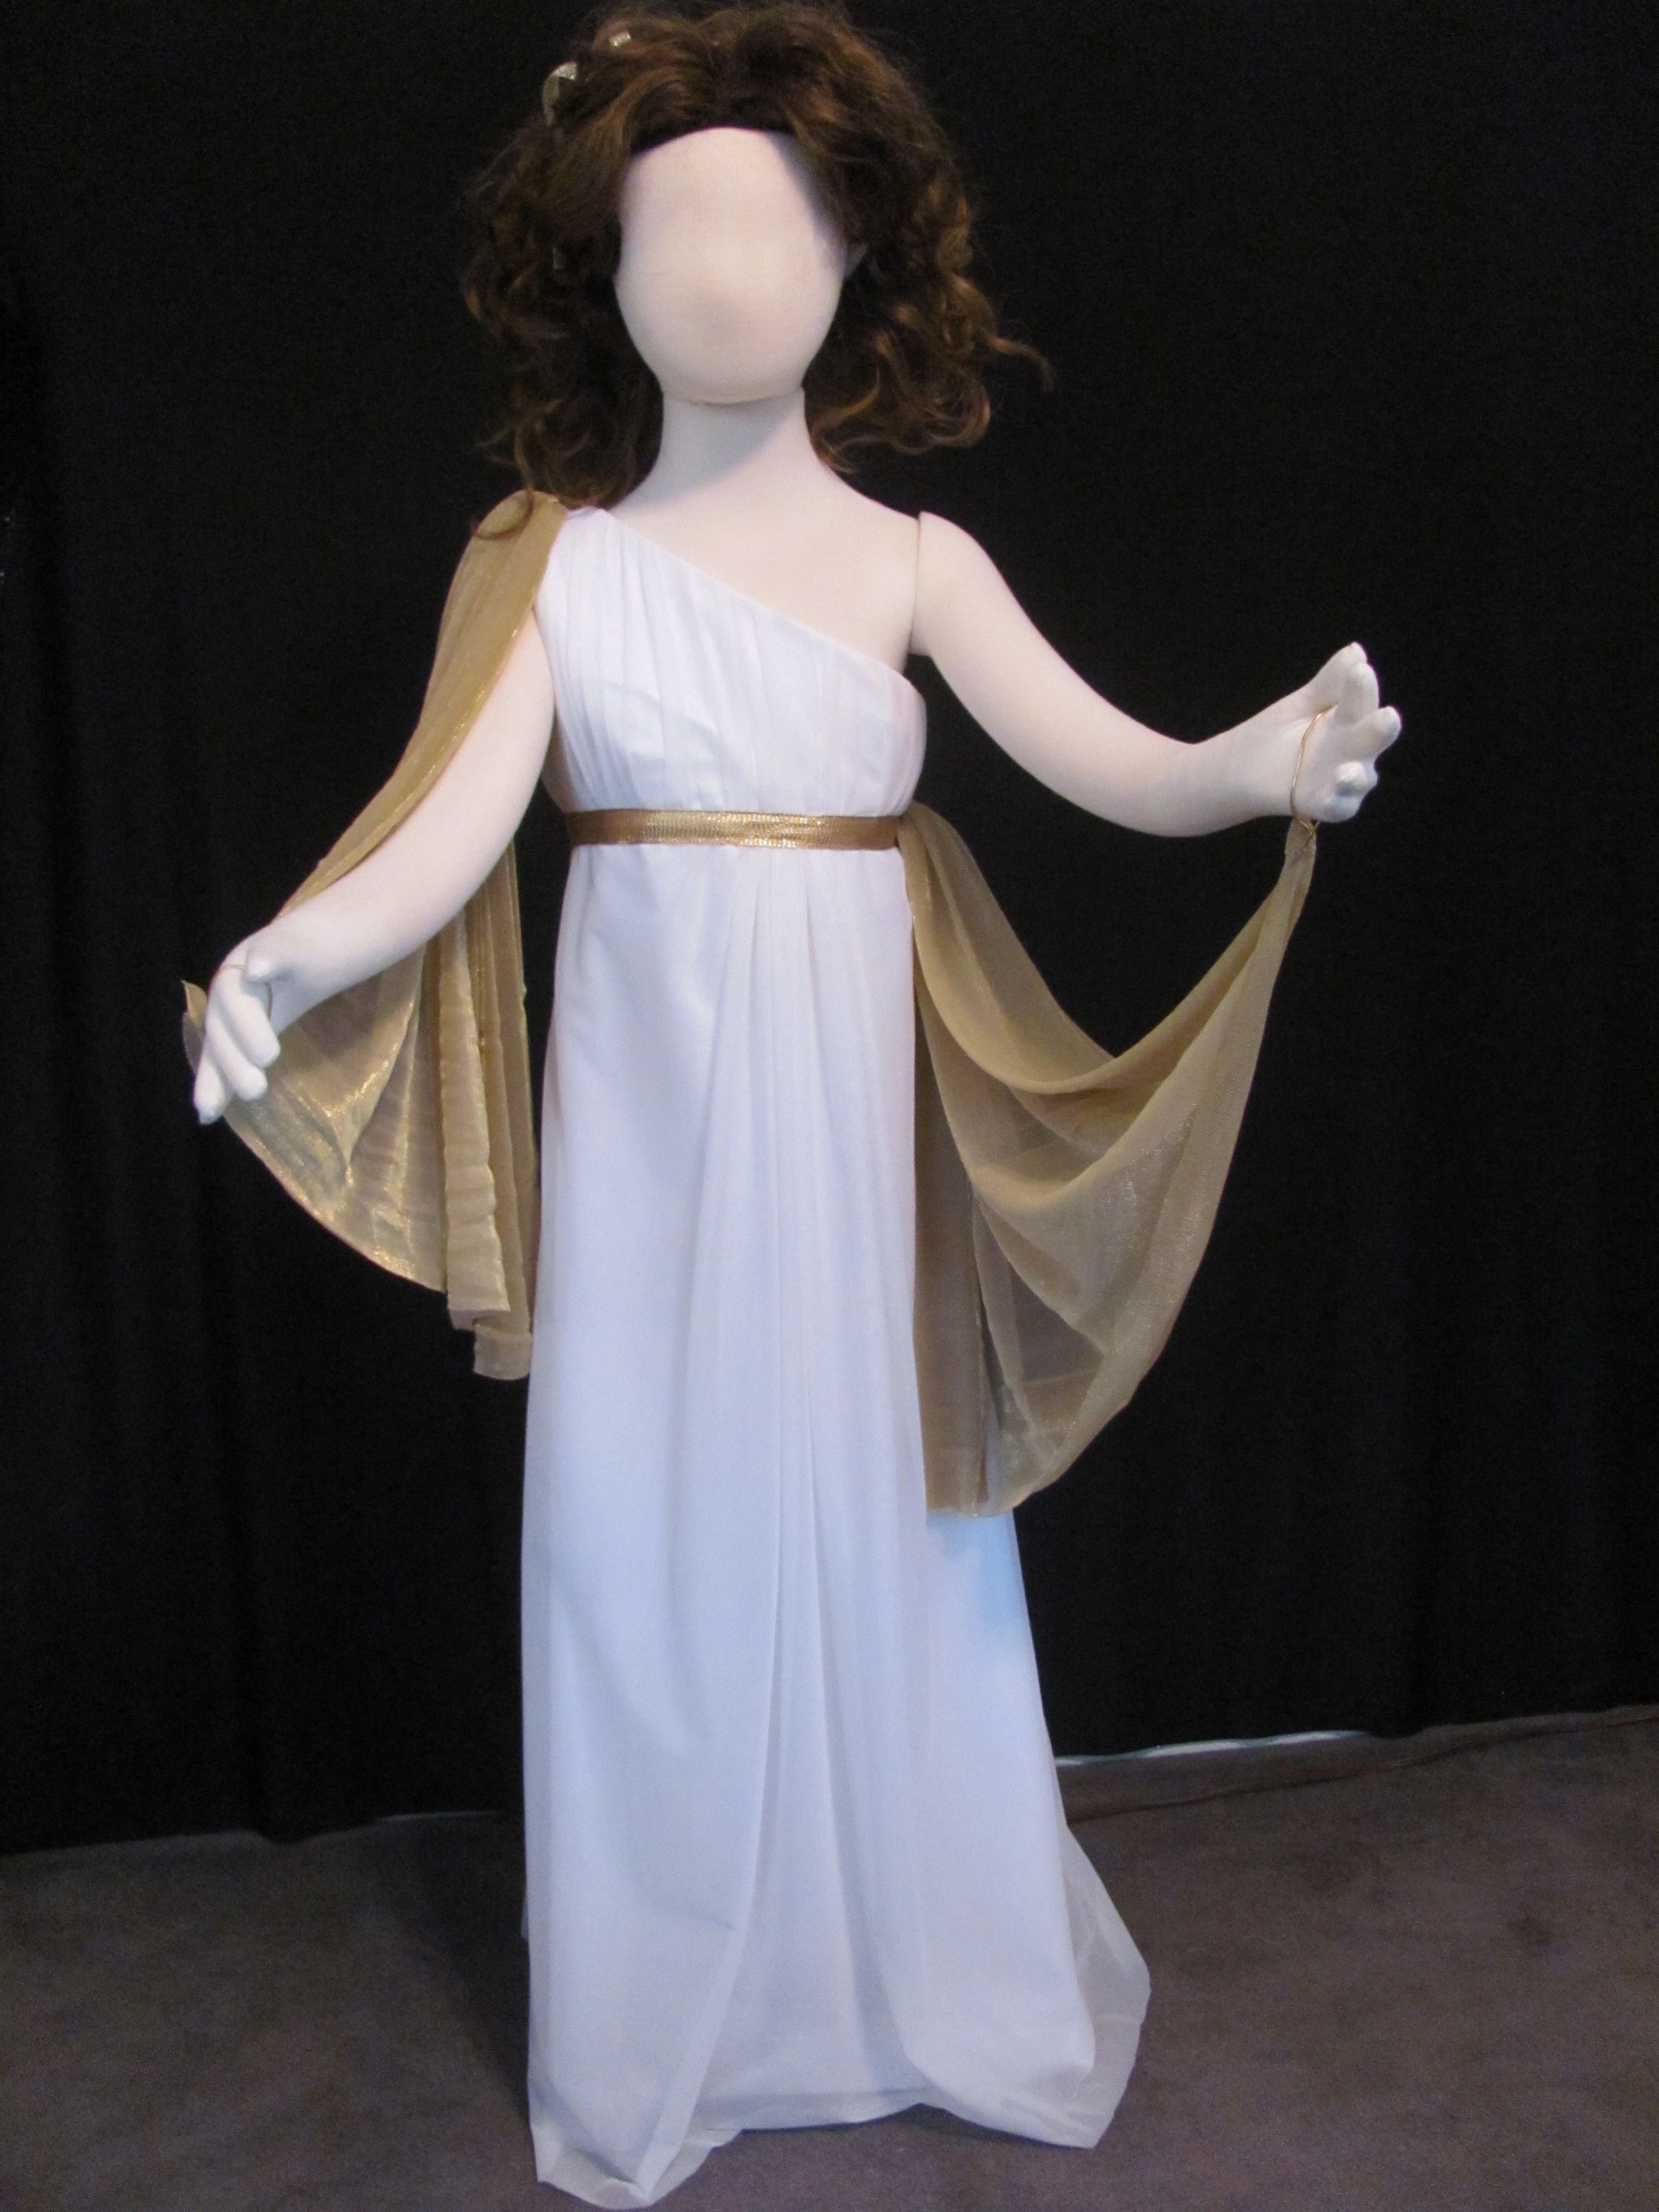 d583bc32bf21c Greek Goddess or Medusa costume for a child. The gold wrap layer is ...